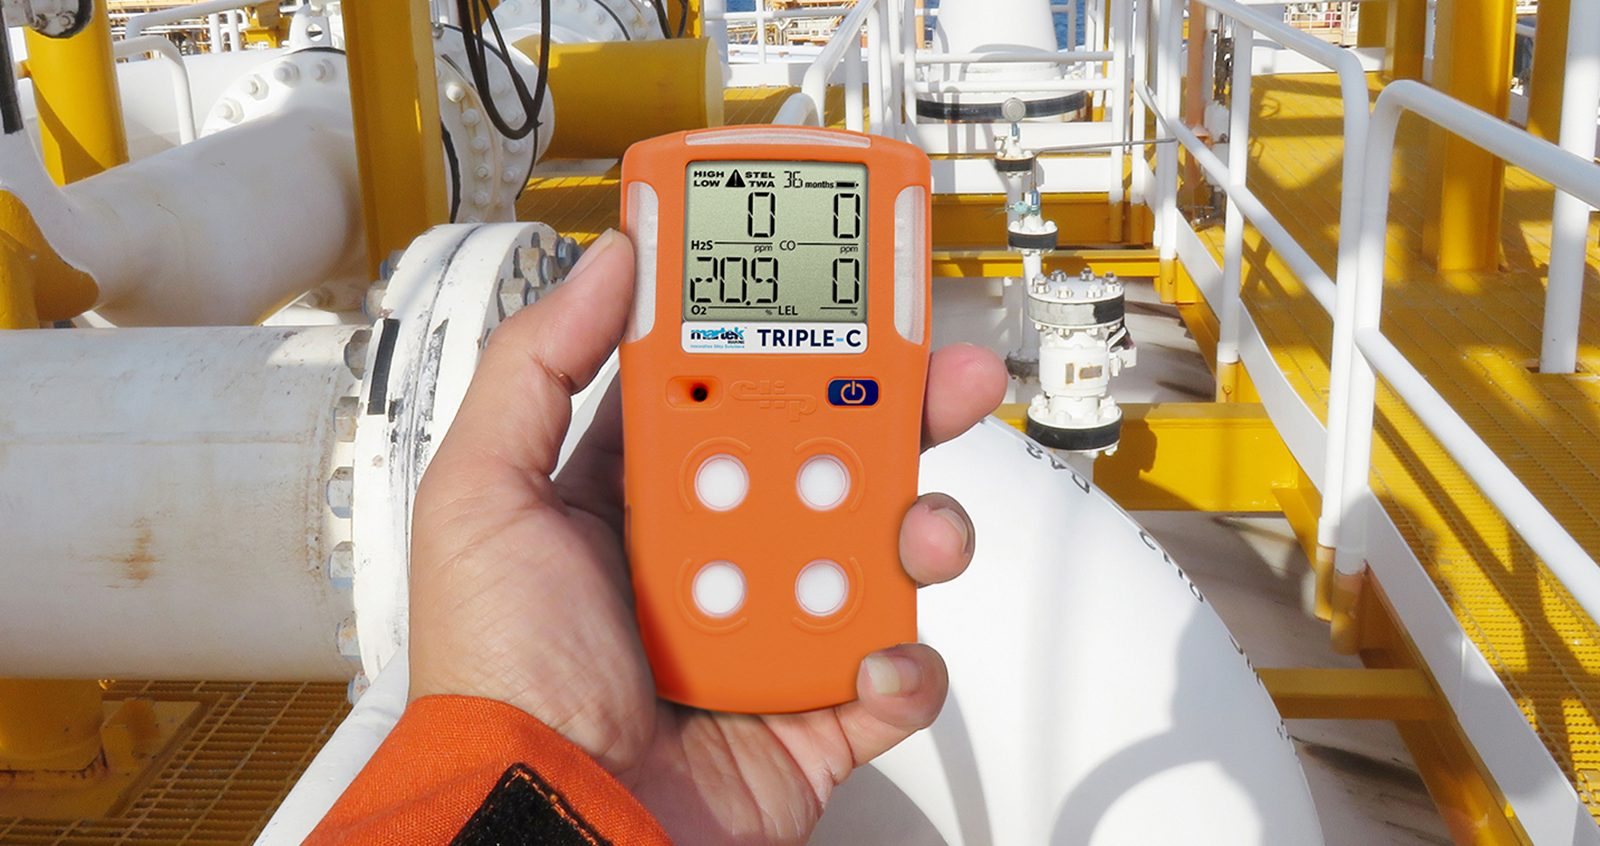 Why you should have portable gas detection on your vessel